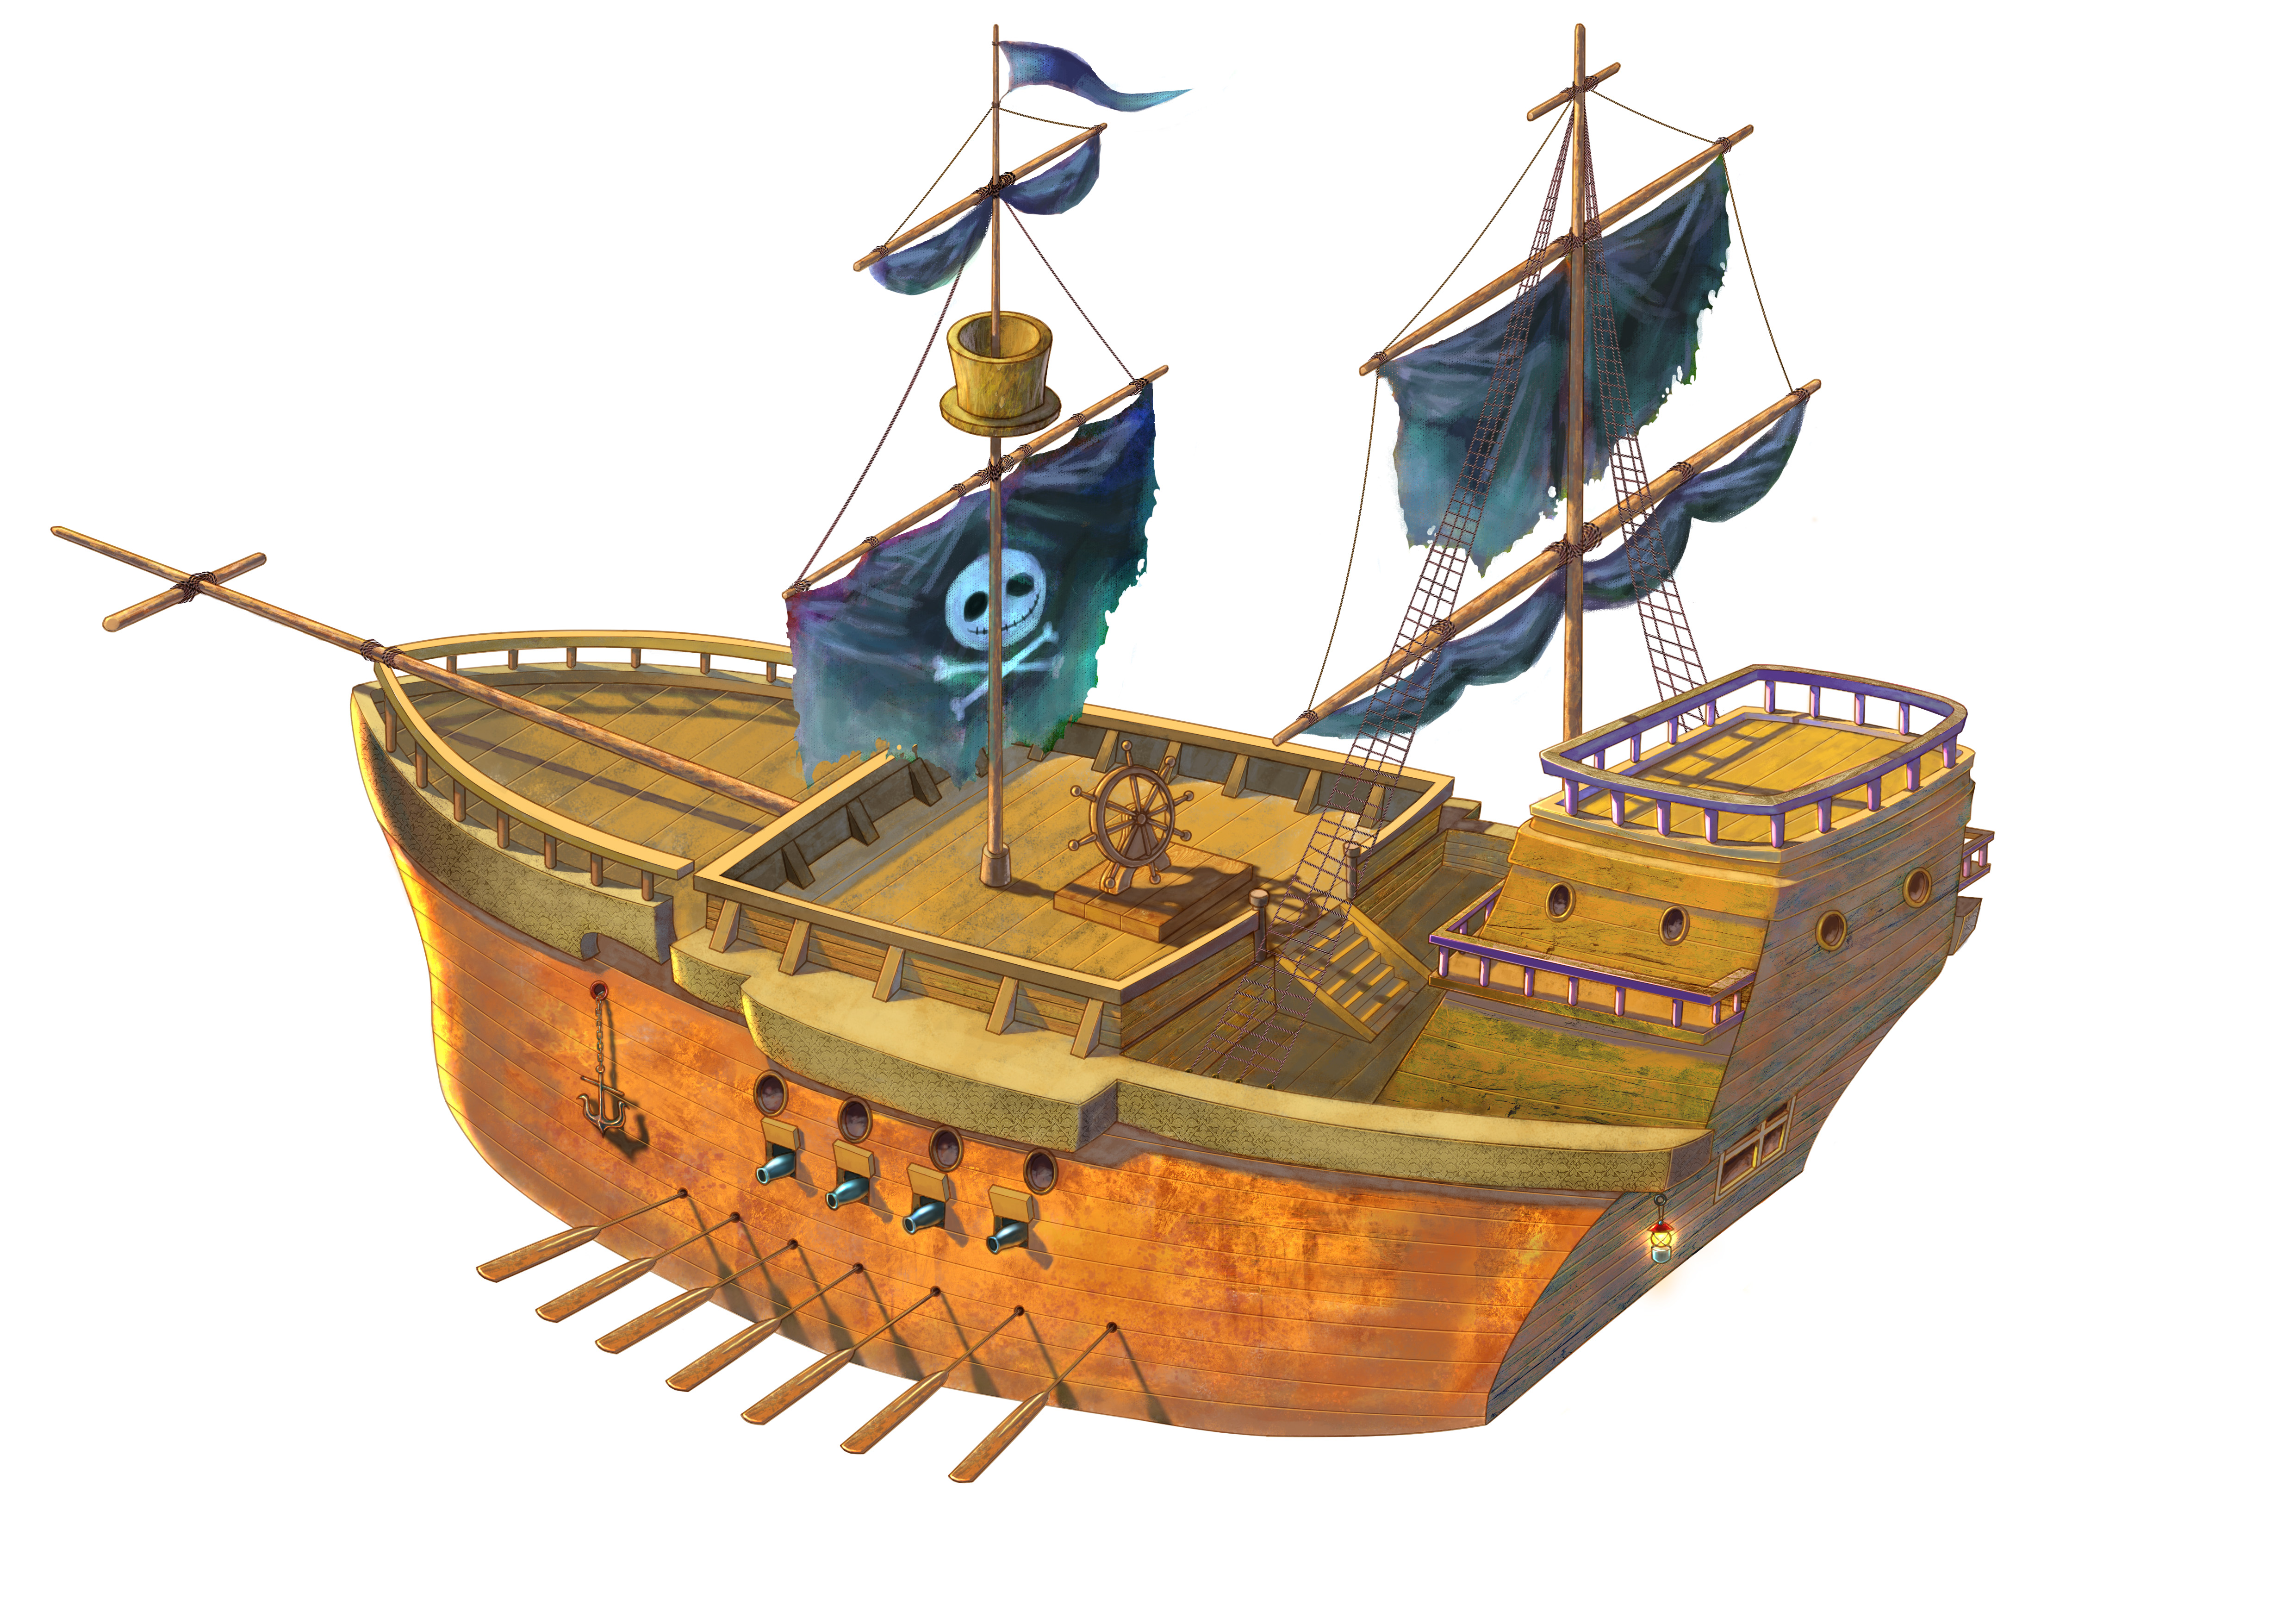 Cartoon Pirate Ship - ClipArt Best - Cliparts.co